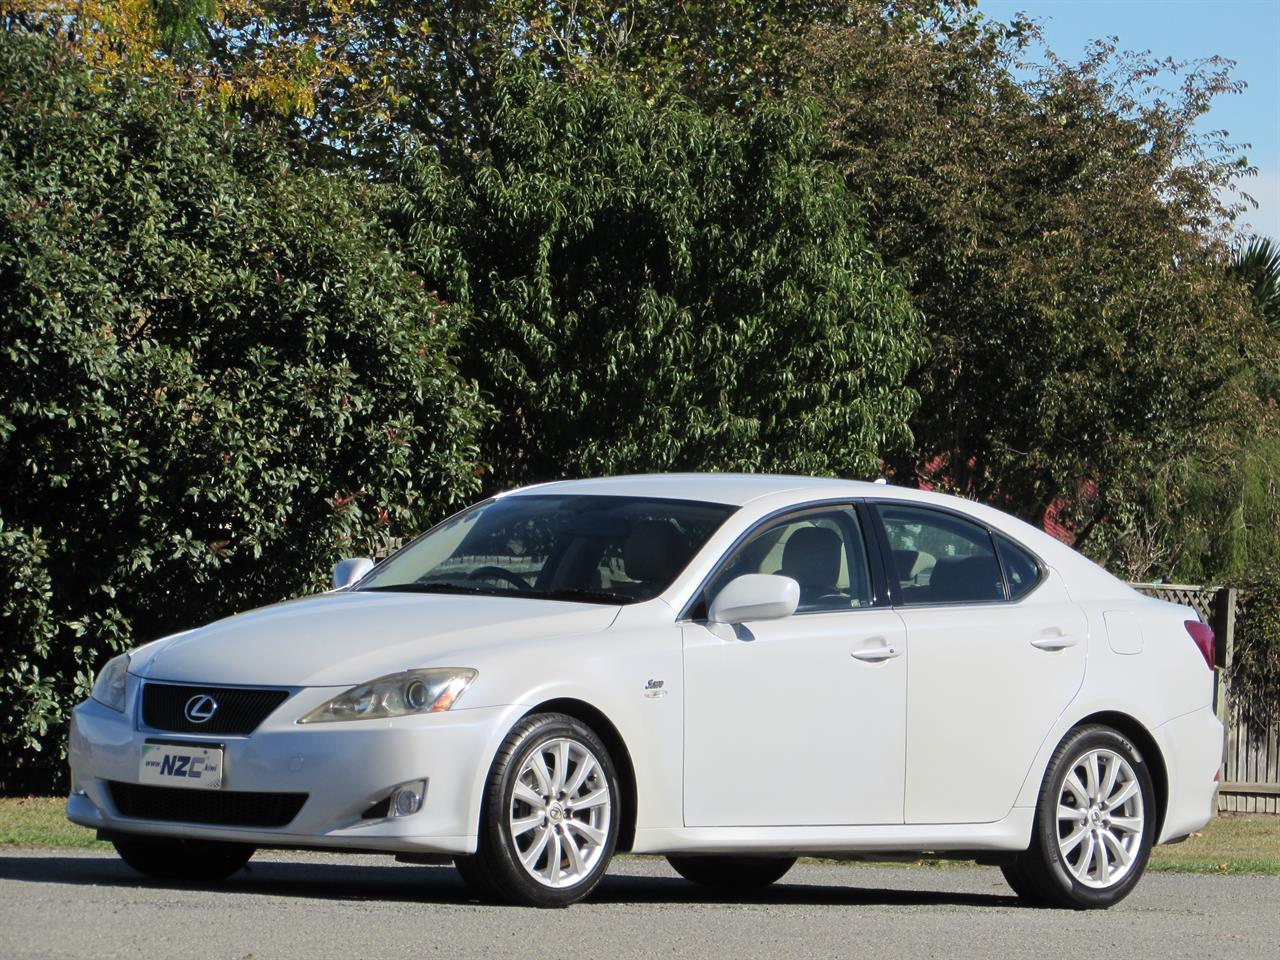 image-2, 2007 Lexus IS 250 at Christchurch